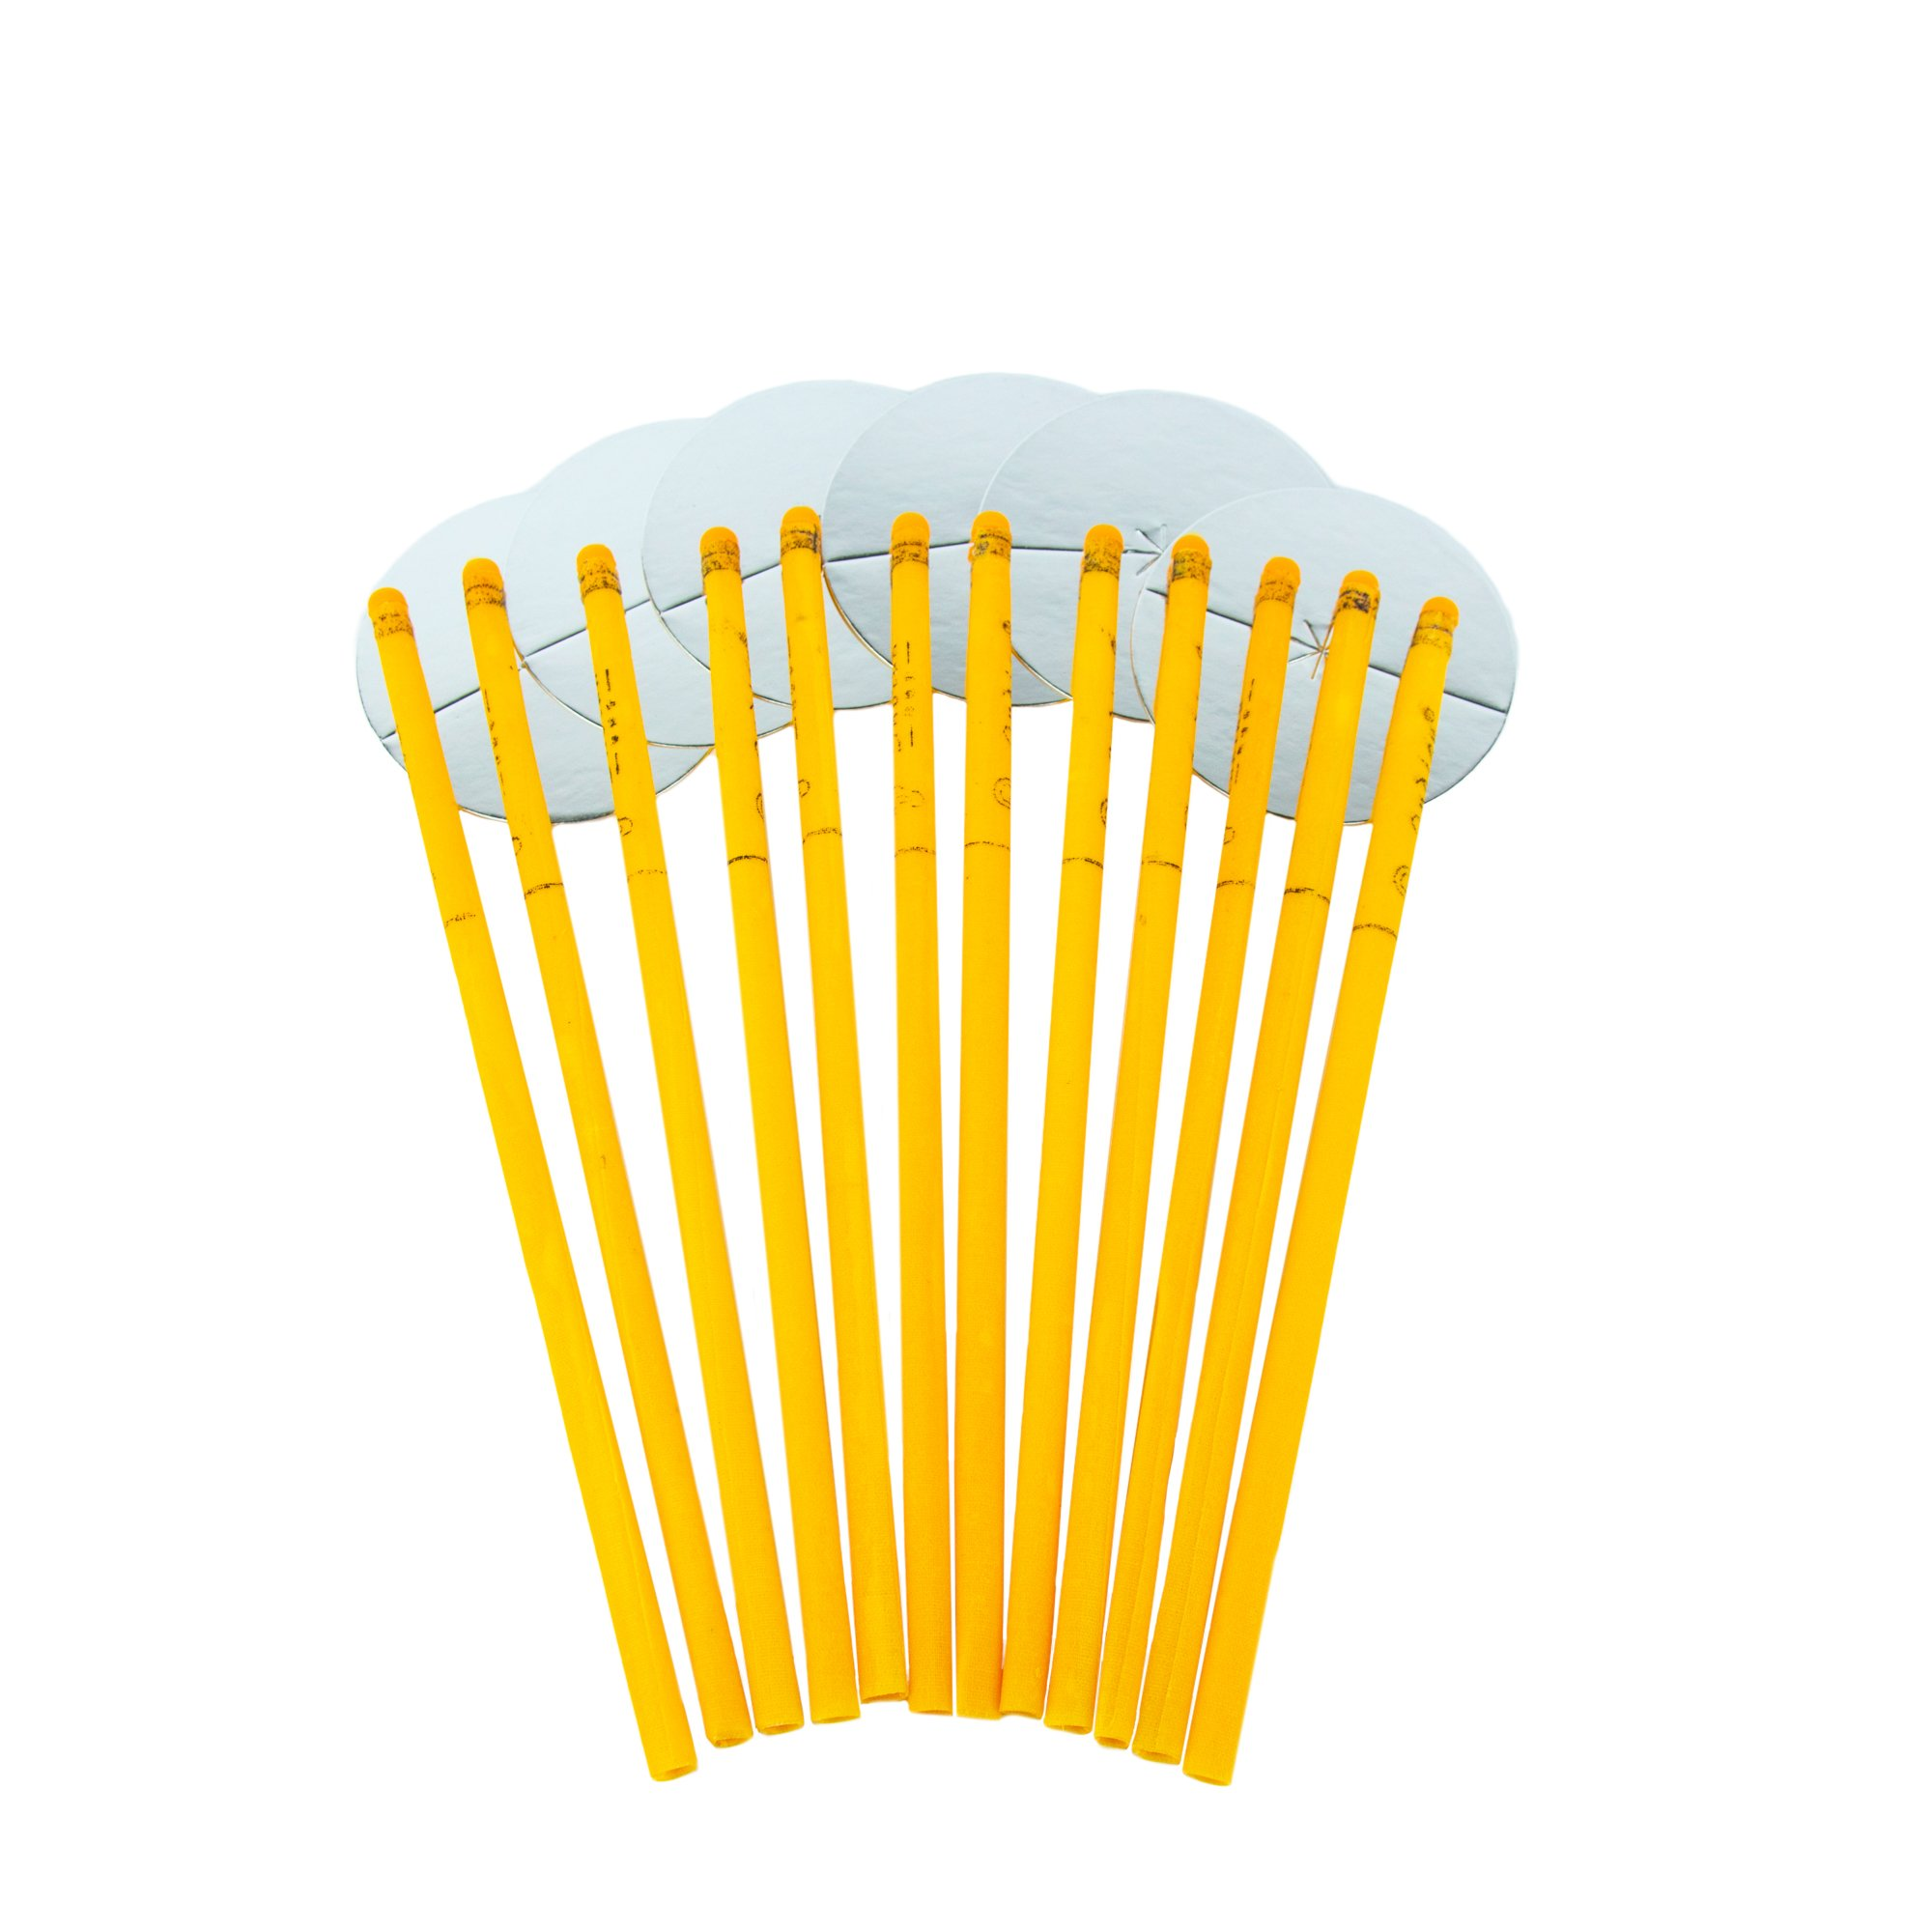 Beeswax Ear Candles 12PCS- 100% All-Natural Beeswax Candling Cones with Natural Honey Scent 6 Protective Disk Included